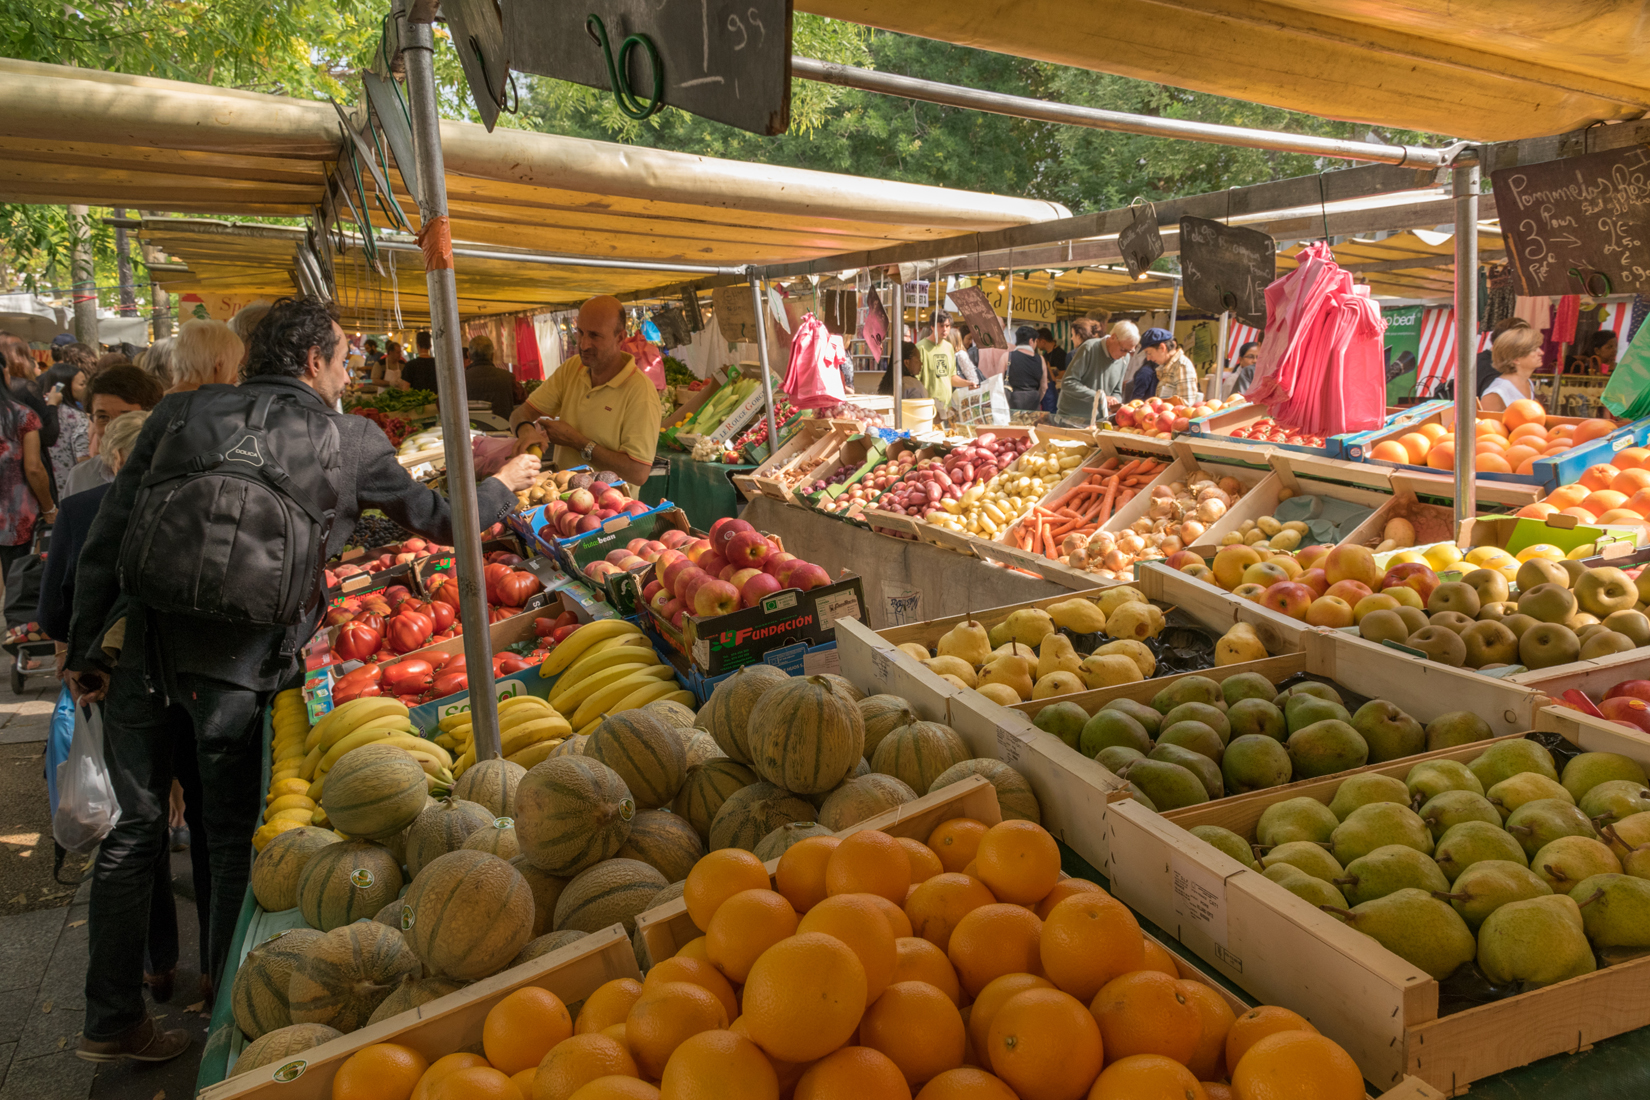 Yet another stall of fruit and vegetables